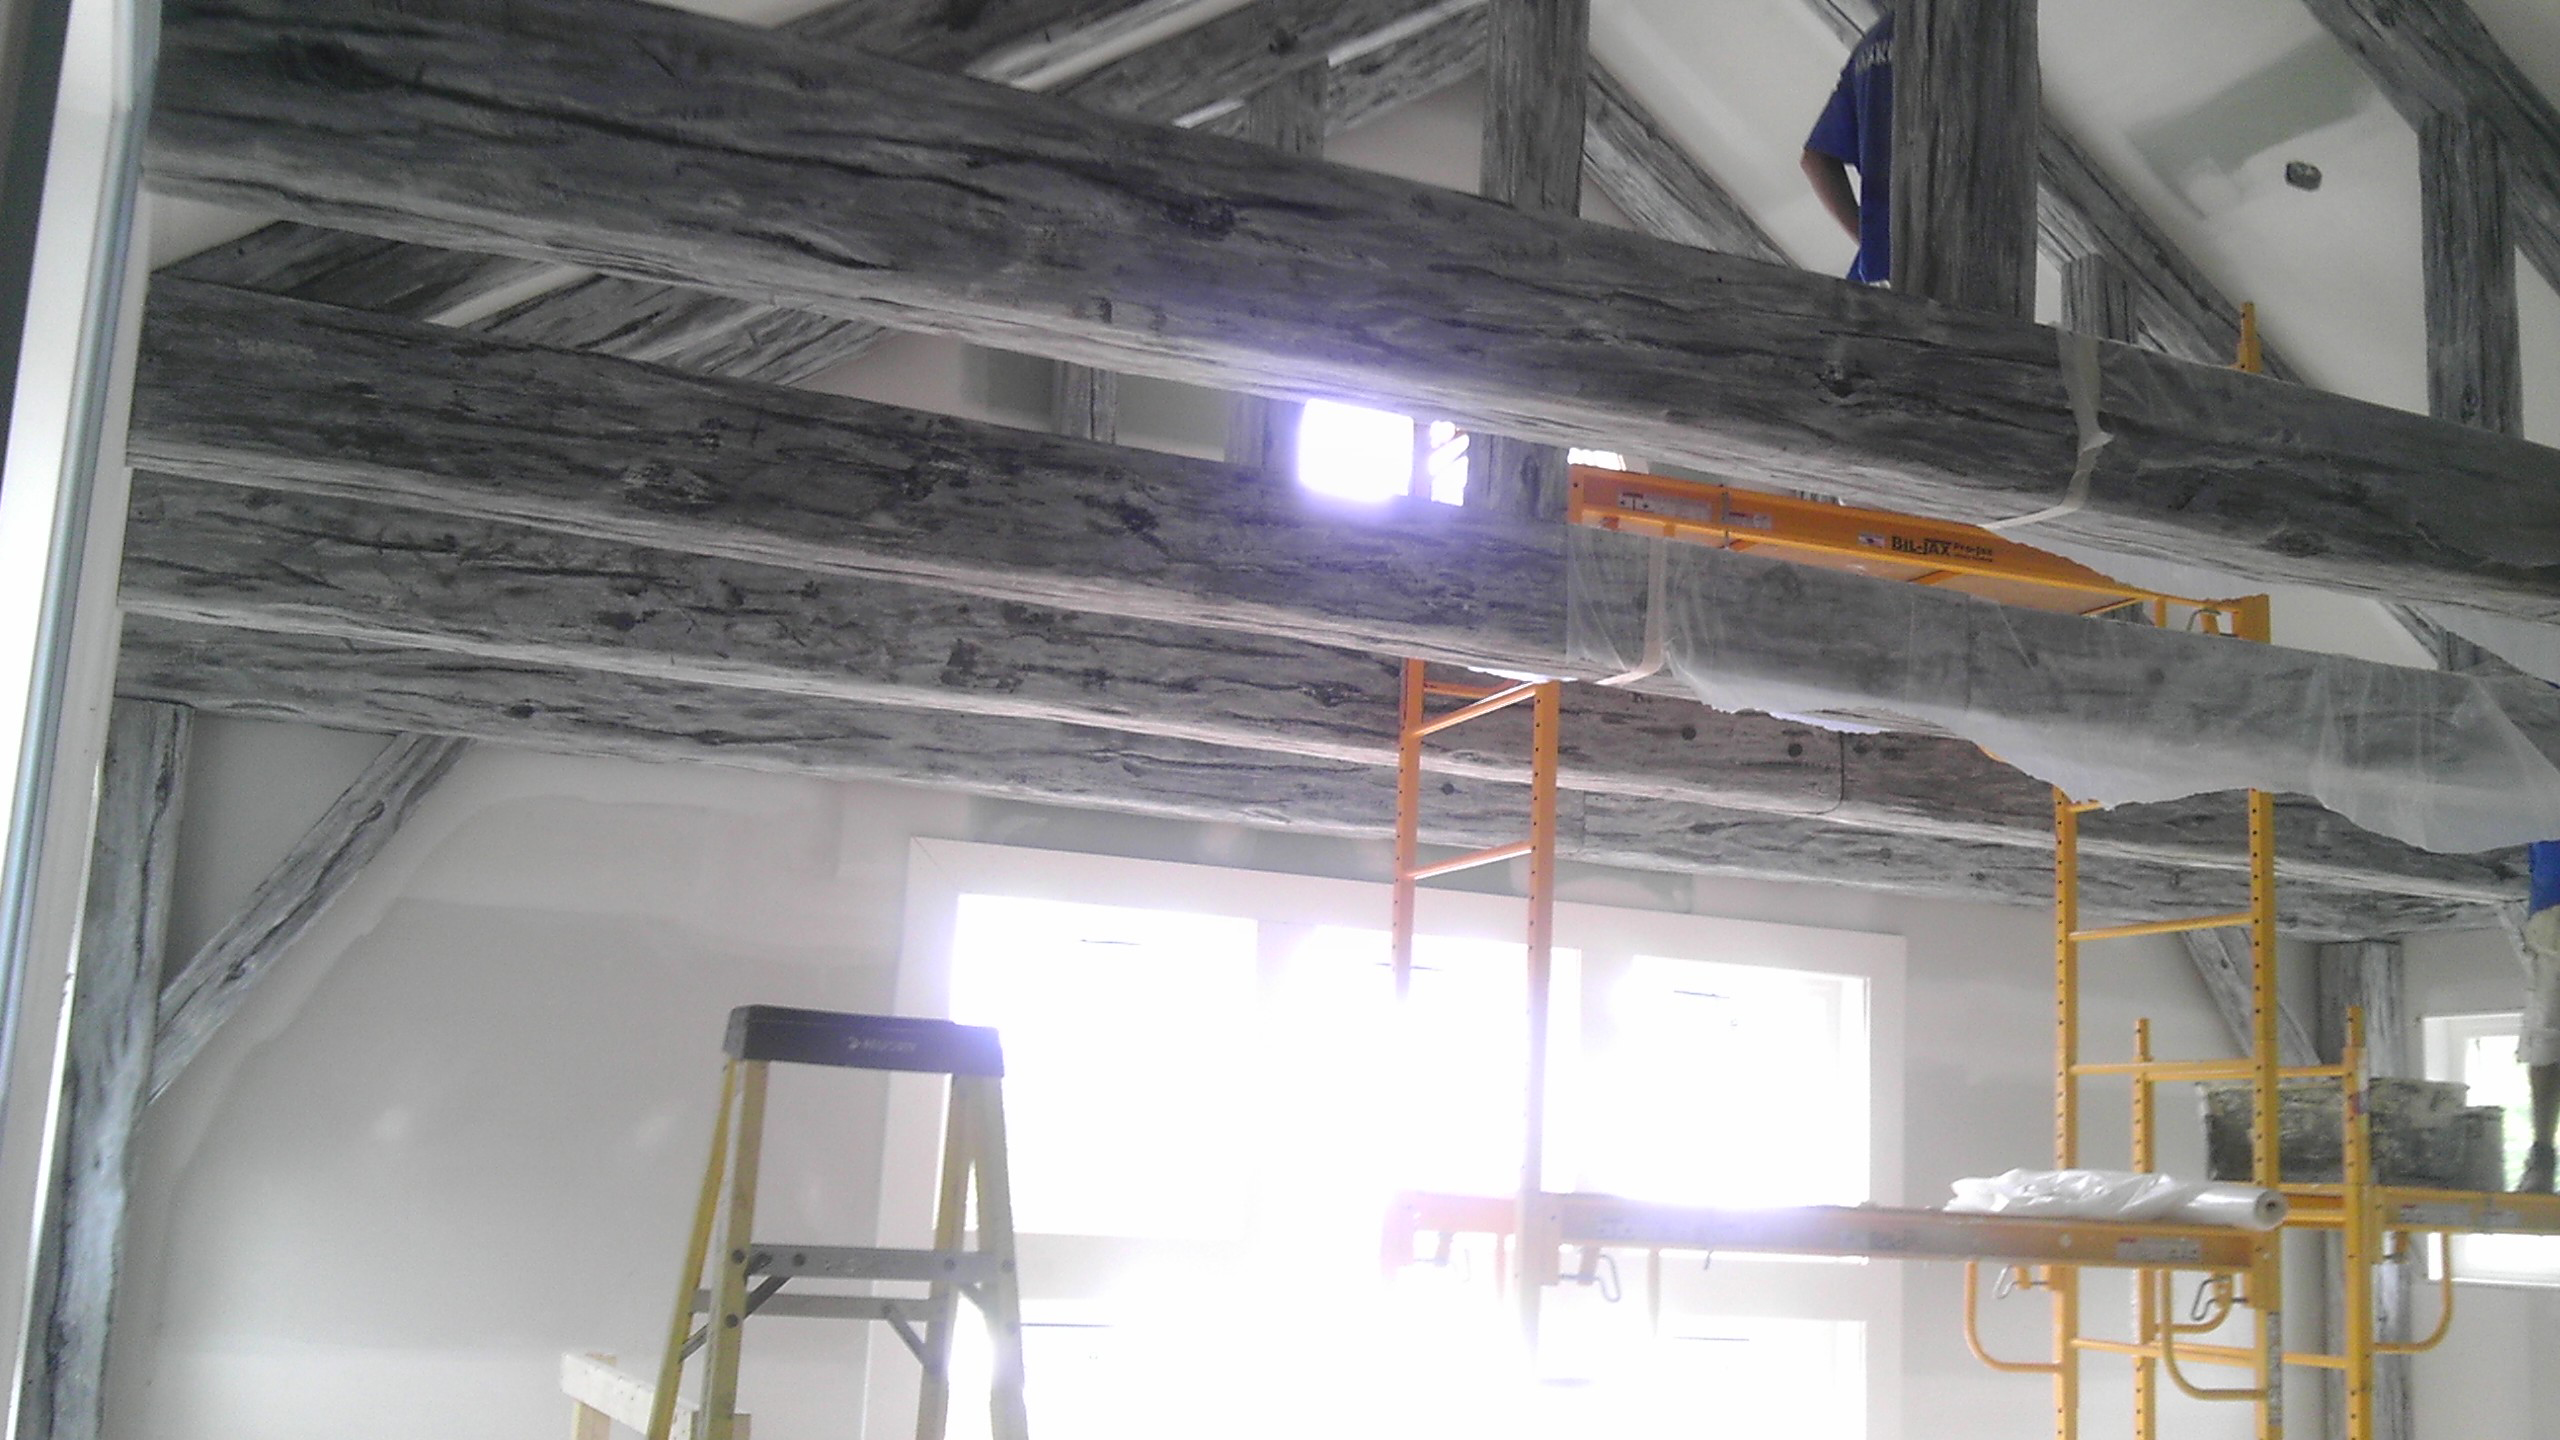 Extreme makeover home edition uses faux ceiling beams for Faux wood trusses